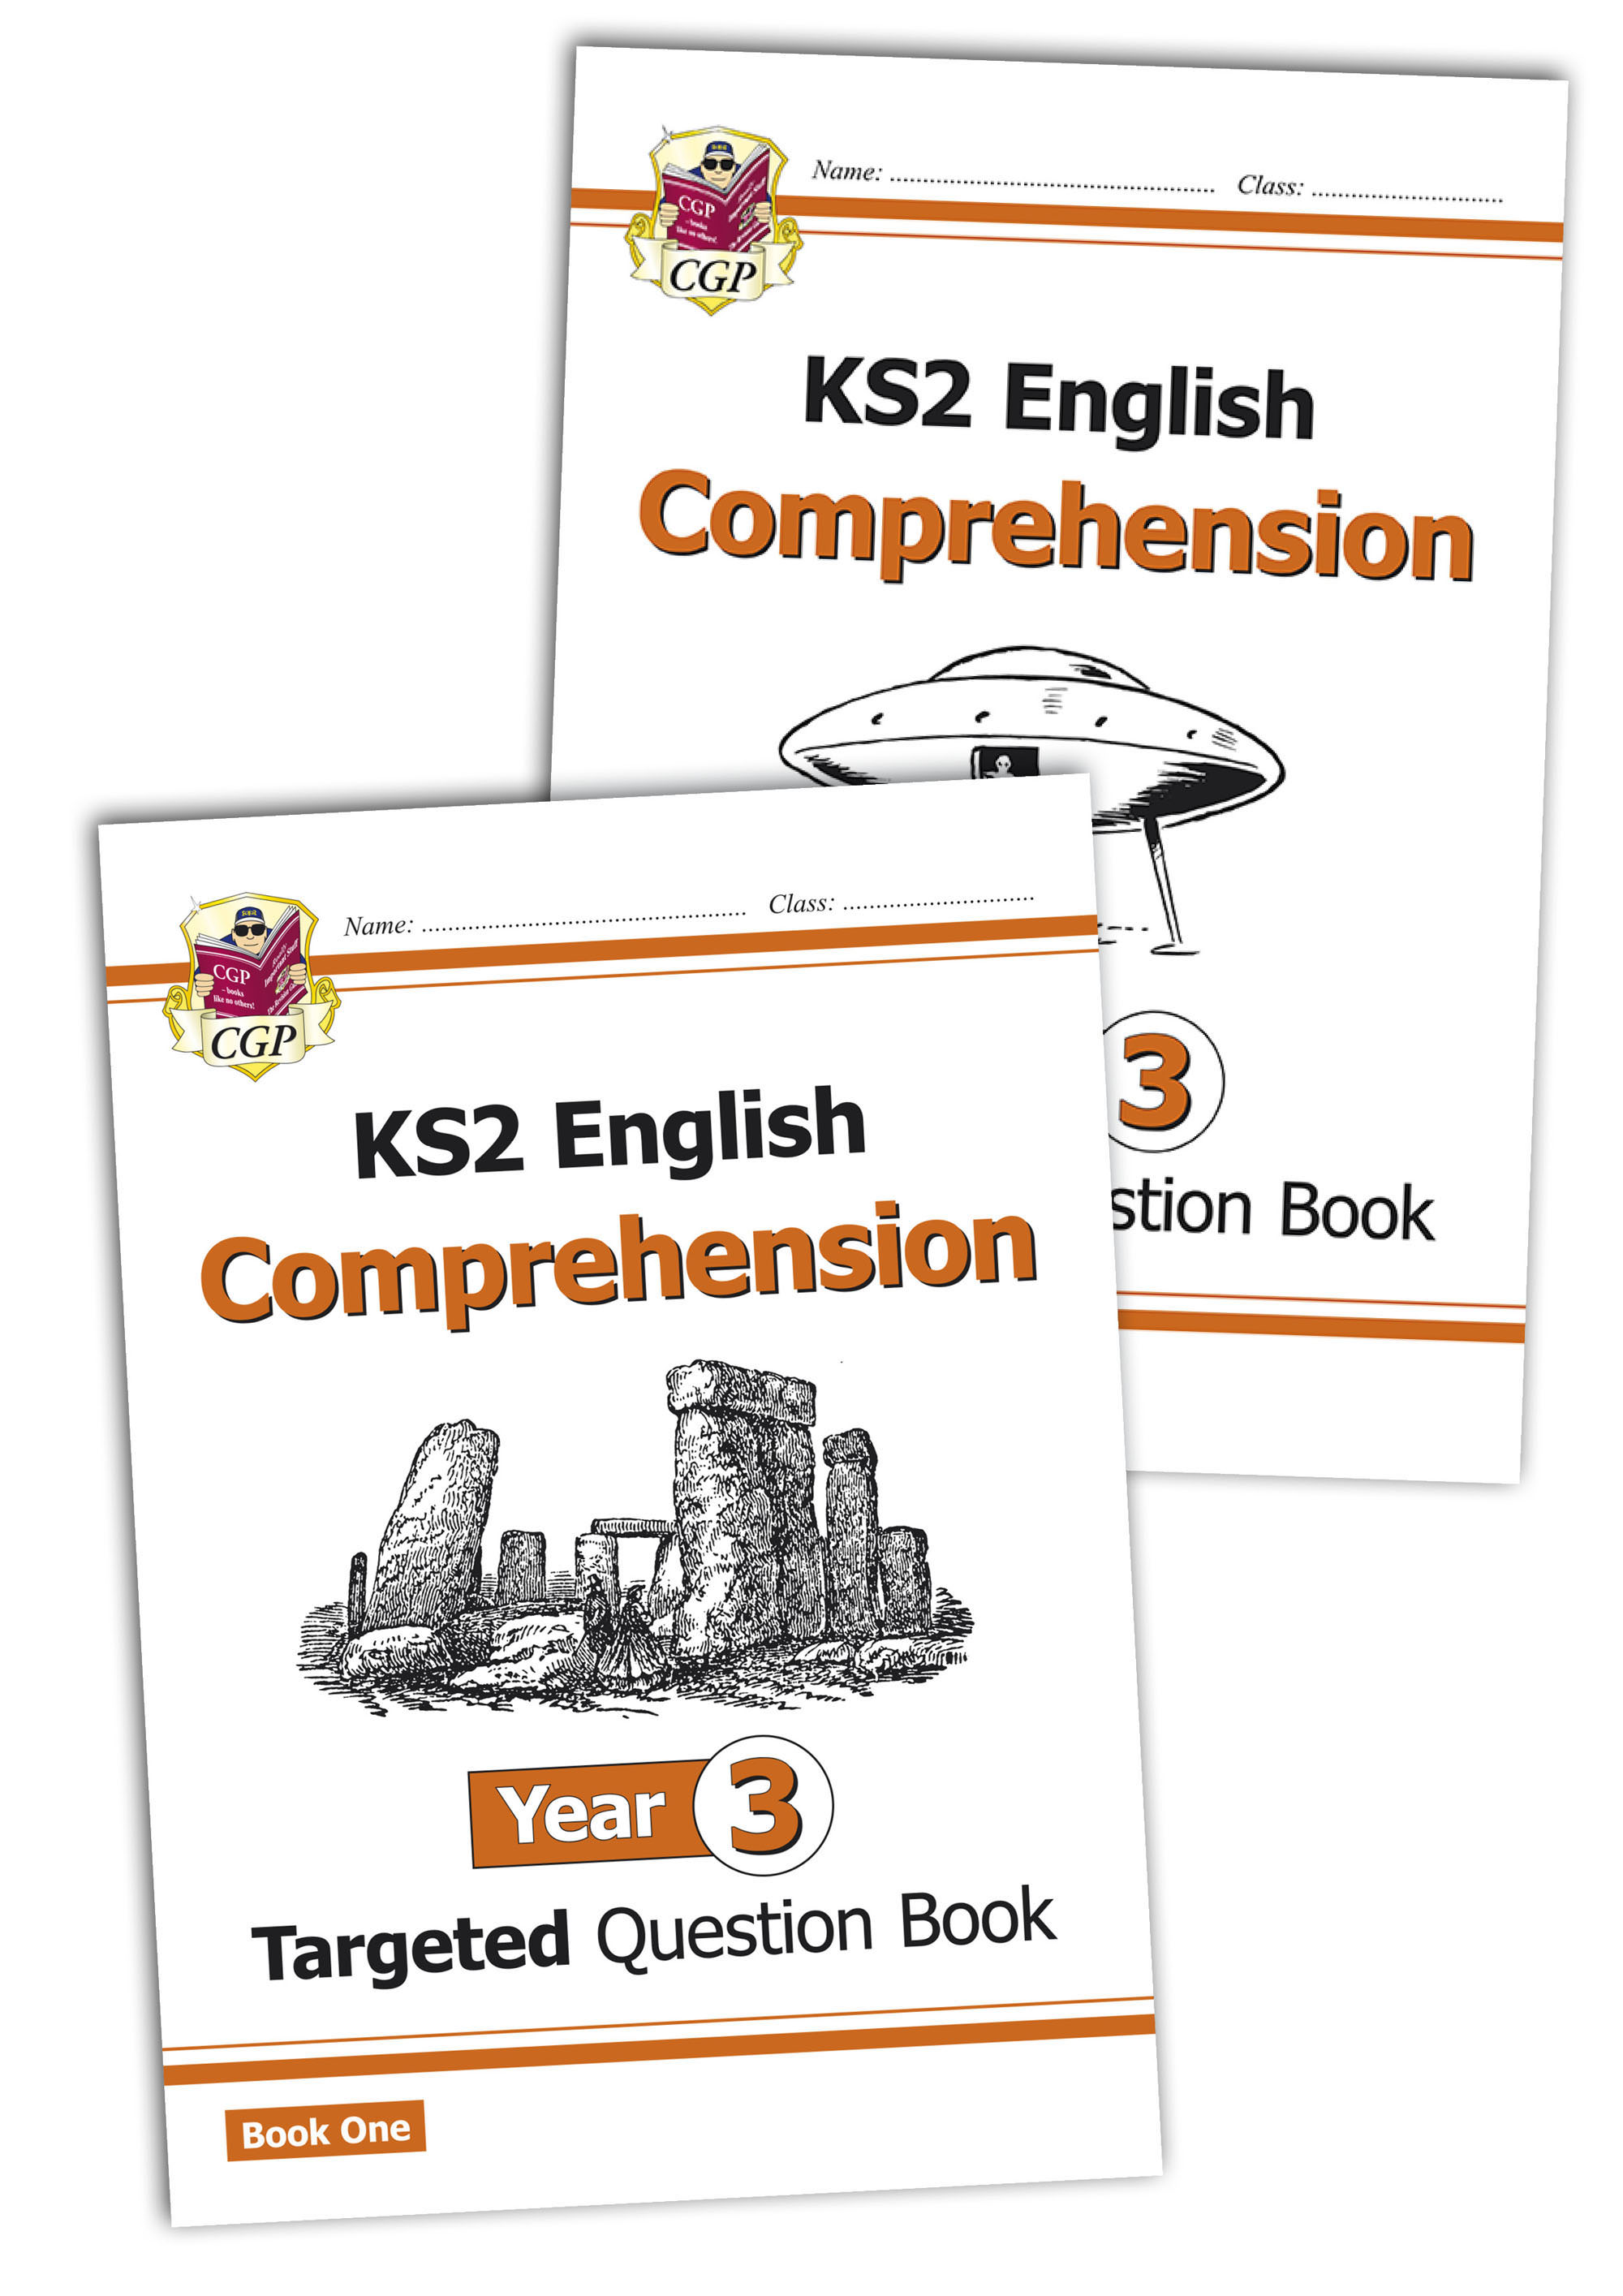 E3CWB21 - KS2 English Targeted Question Book: Year 3 Comprehension - Book 1 & 2 Bundle